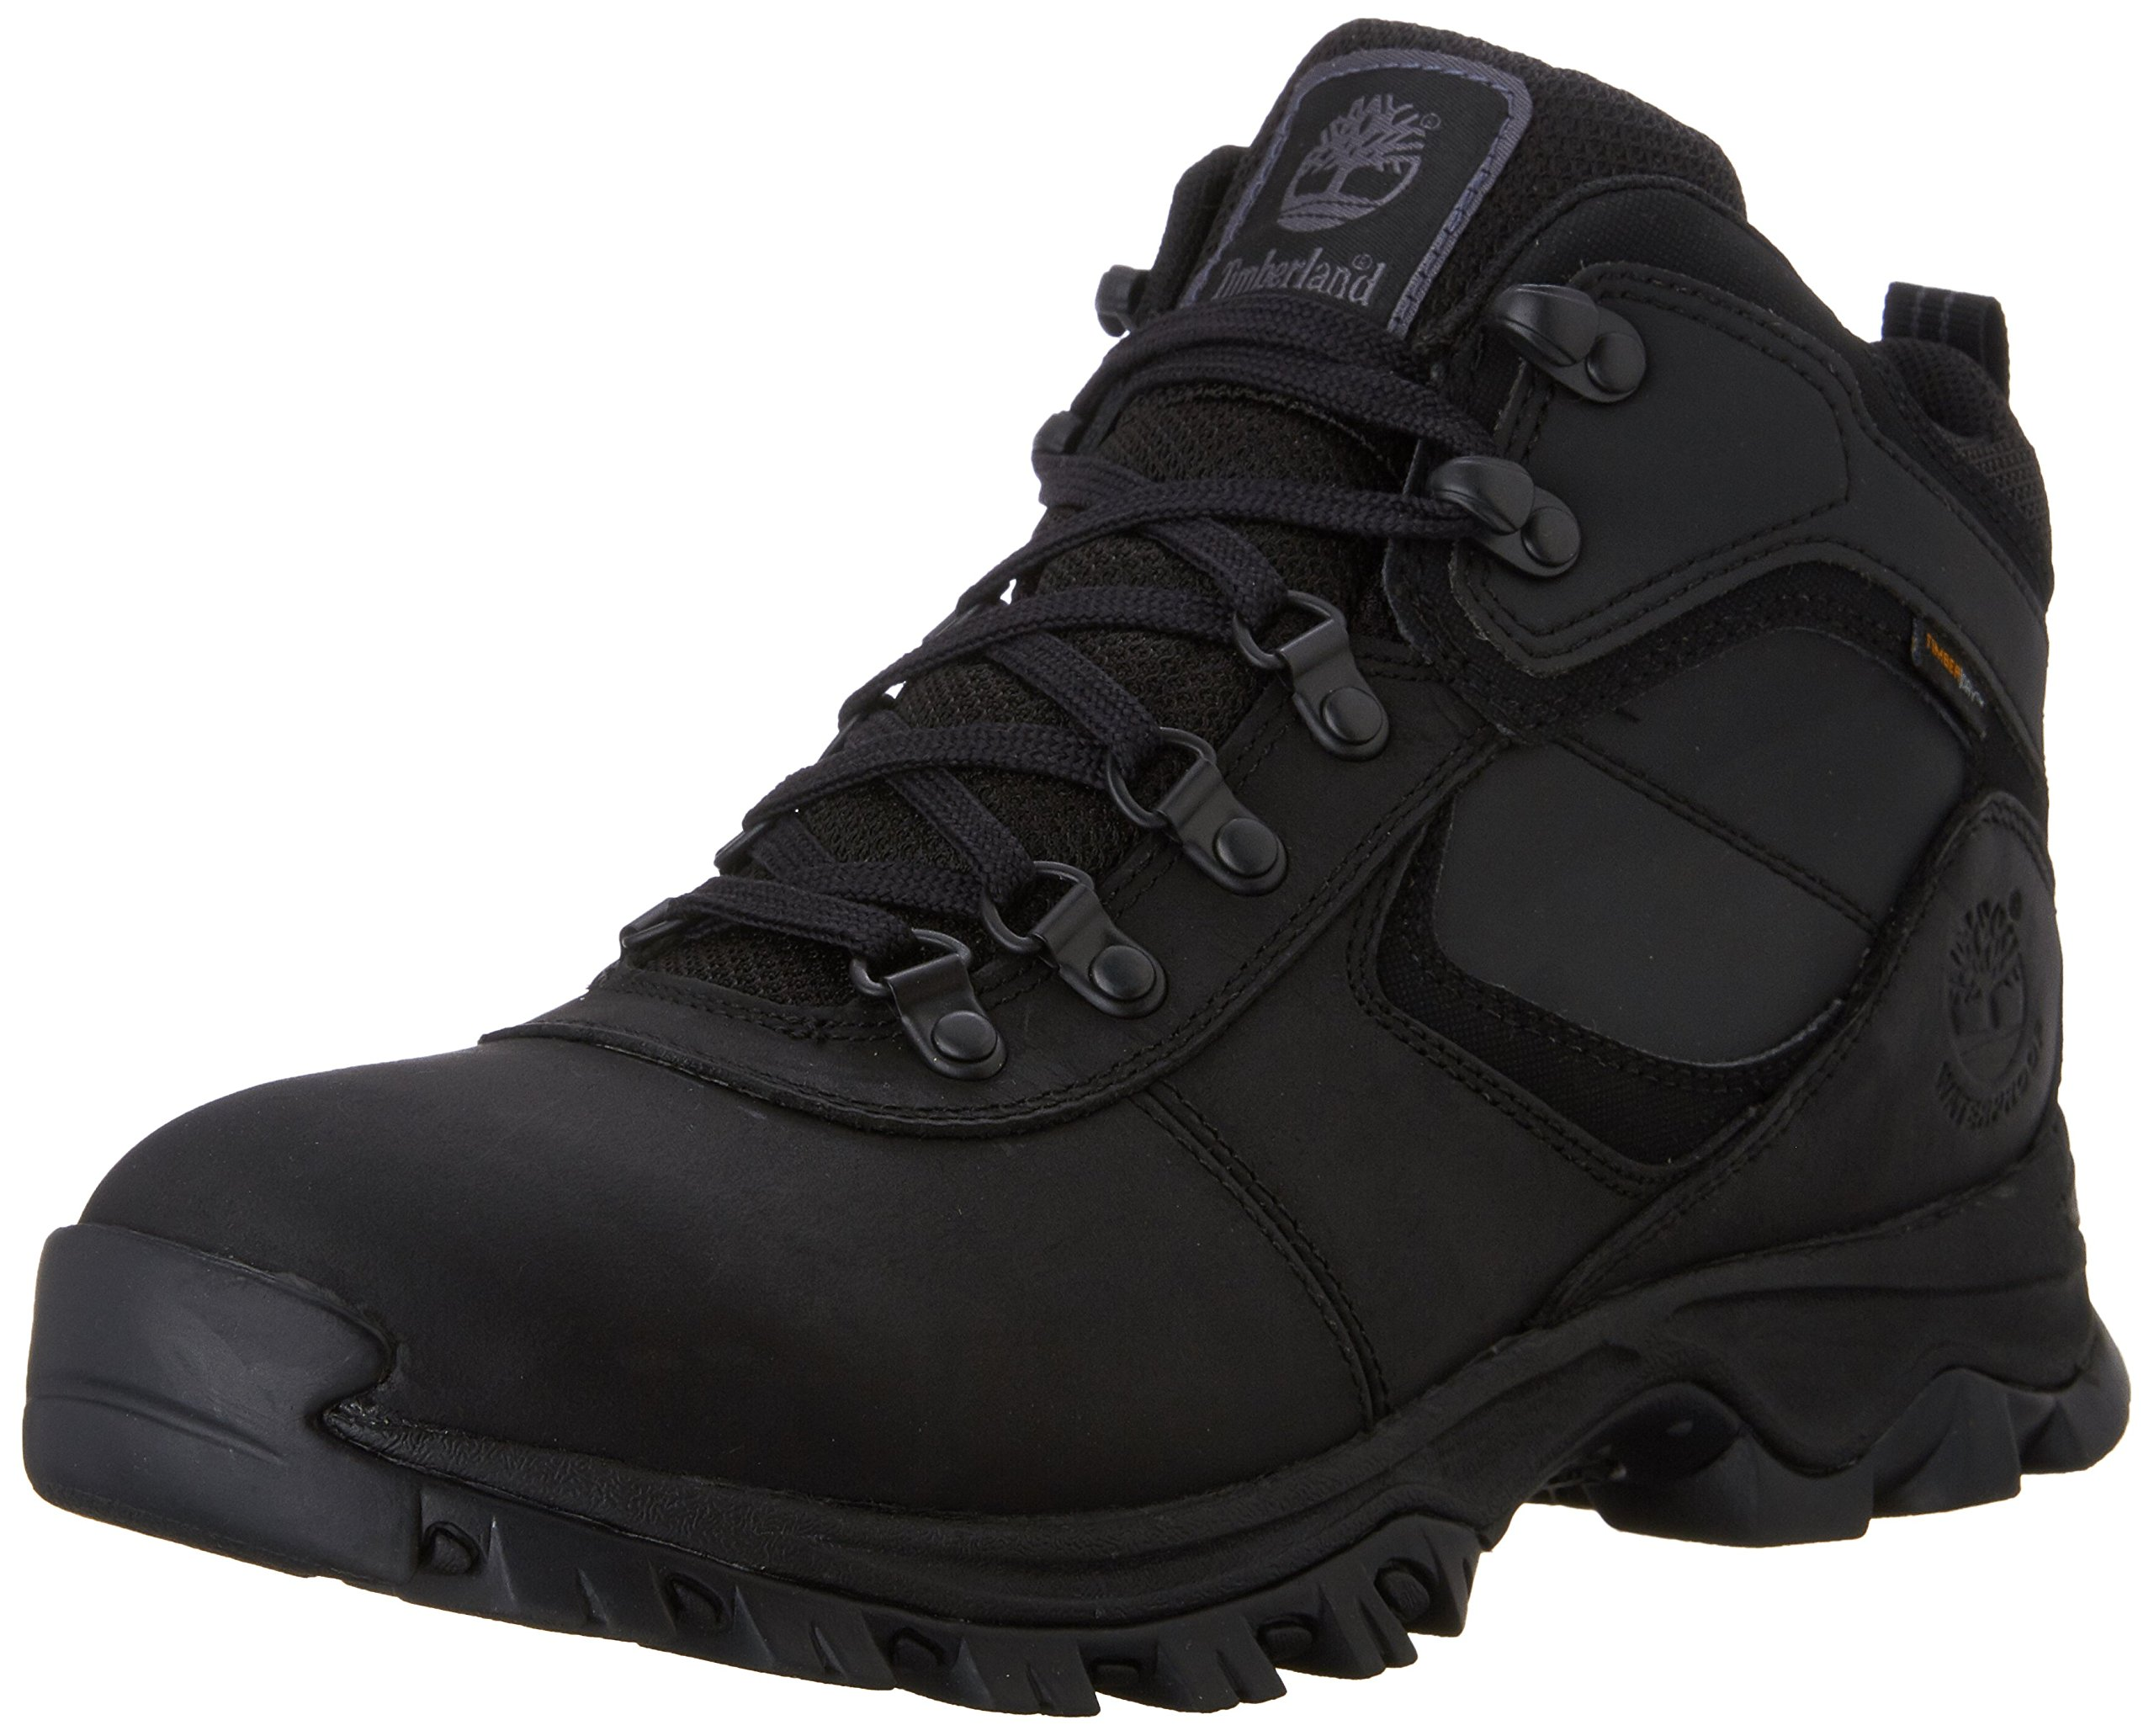 Timberland Men's Mt. Maddsen Hiker Boot,Black,13 M US